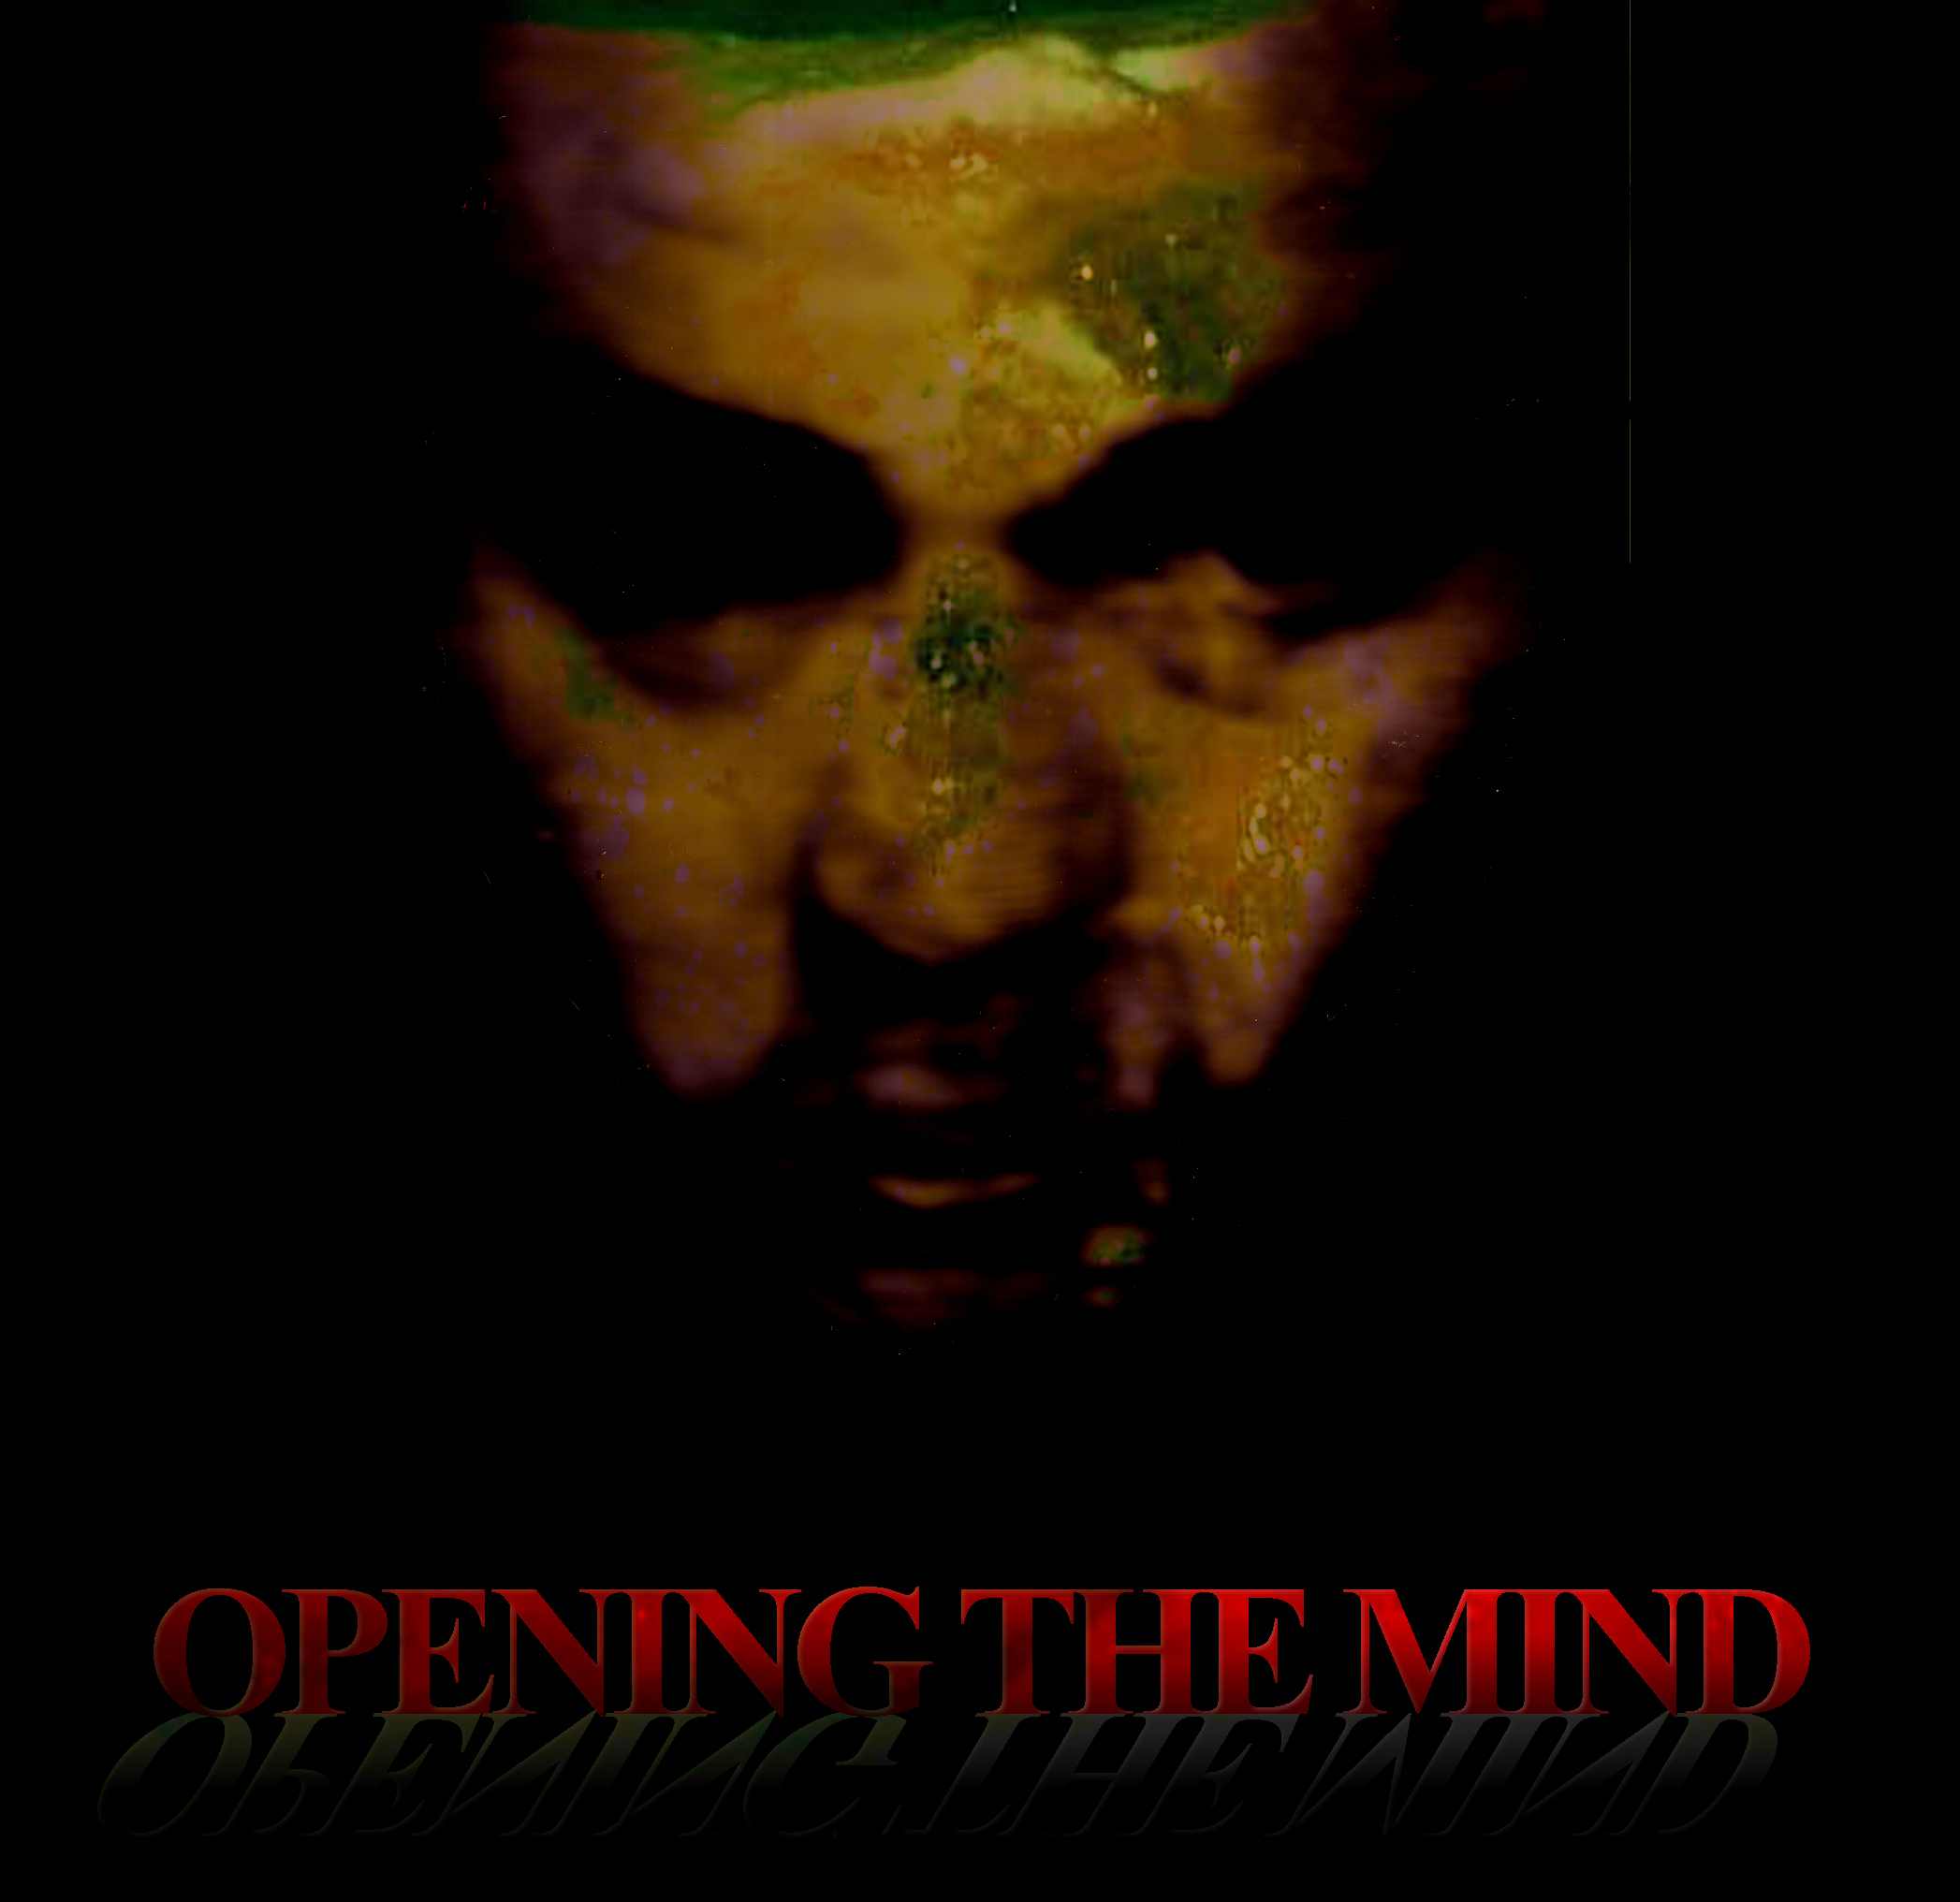 Opening the Mind promotional piece